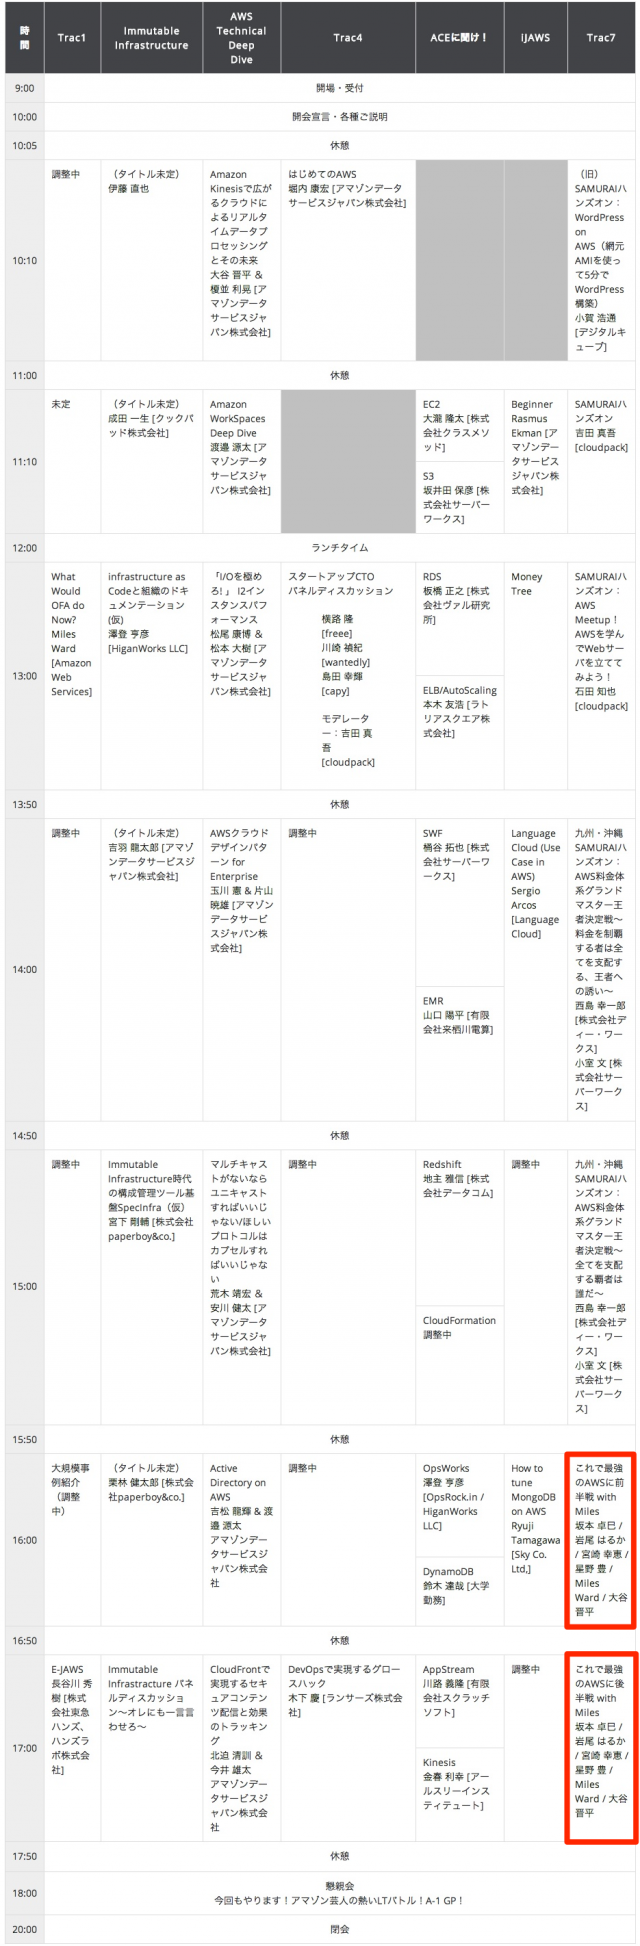 jaws-days-2014-timetable-strongest-aws